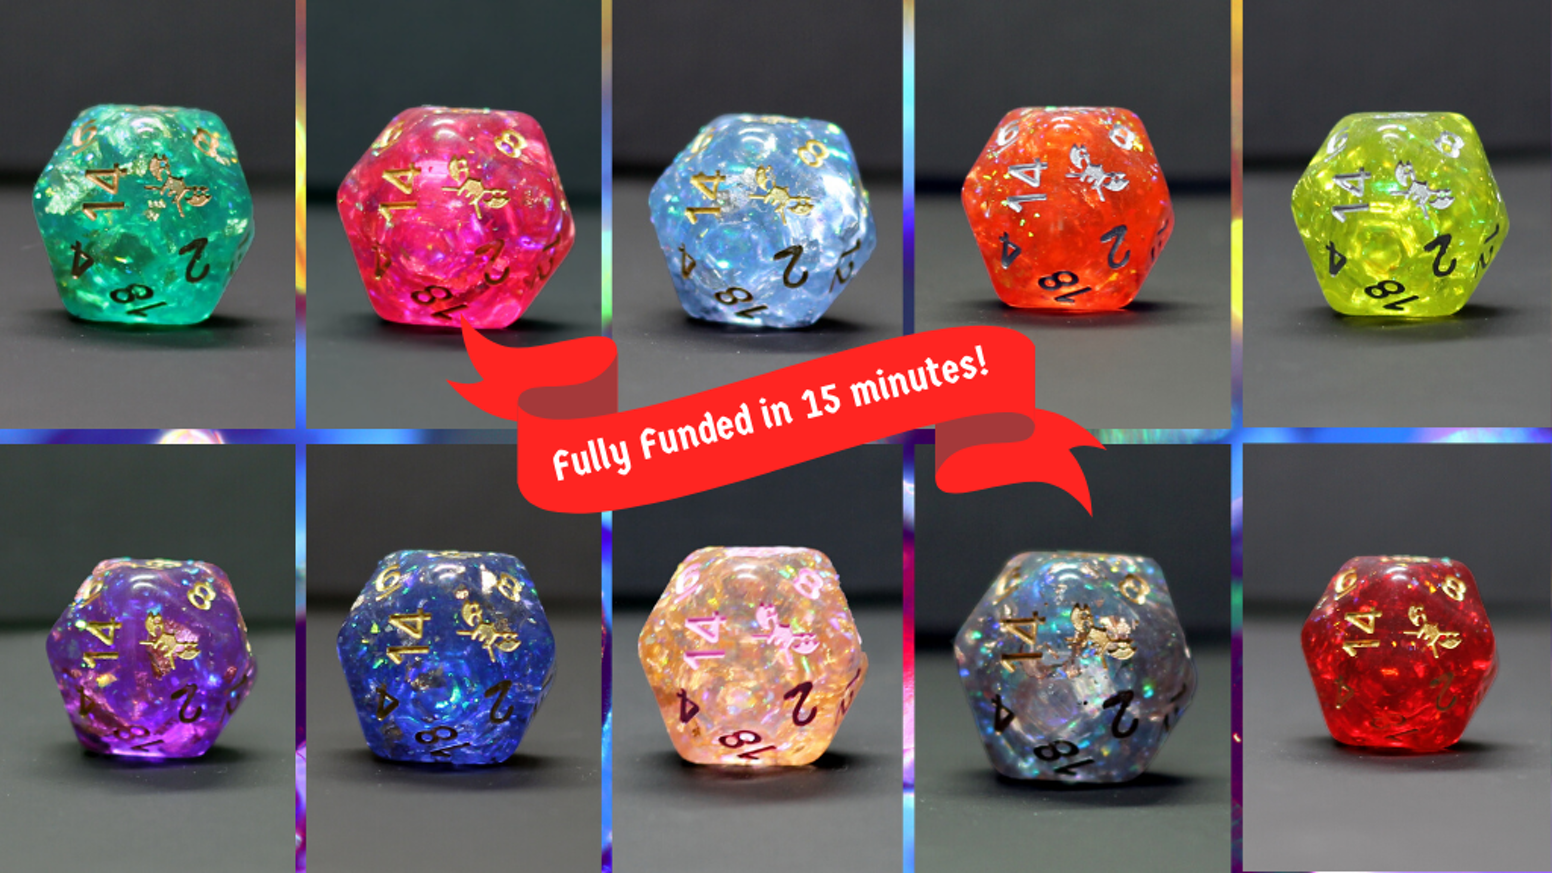 Beautiful 11 Piece Polyhedral Dice Sets for DnD and other tabletop games and RPGs. #SkullSplitter2020